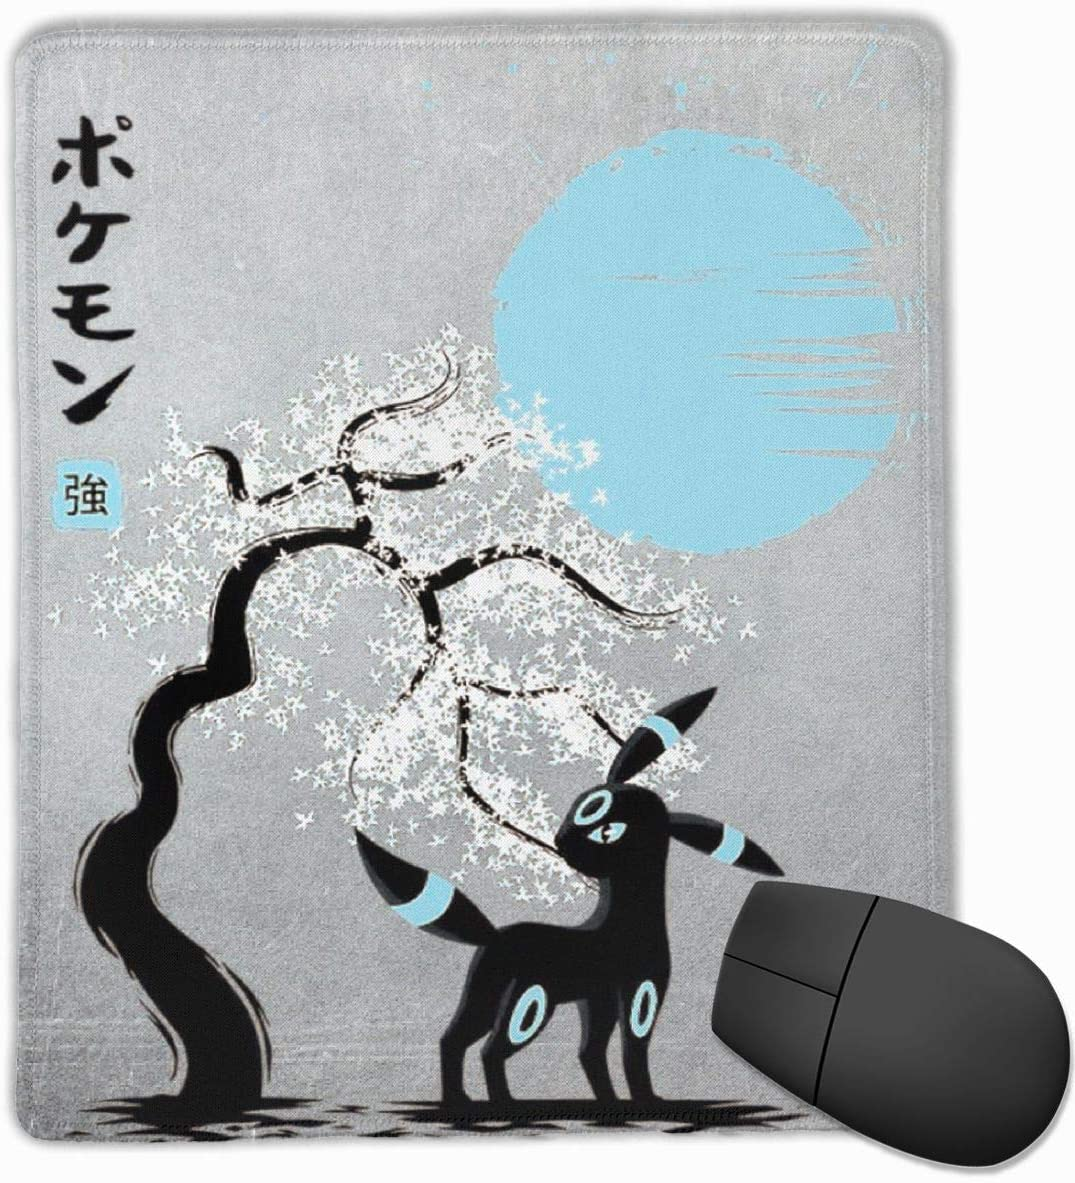 Poke-mon Umbreon Japanese Style Mouse Pad Laptop Office Supplies Gaming Mouse Pad Fit Desktop Personal Computer Console